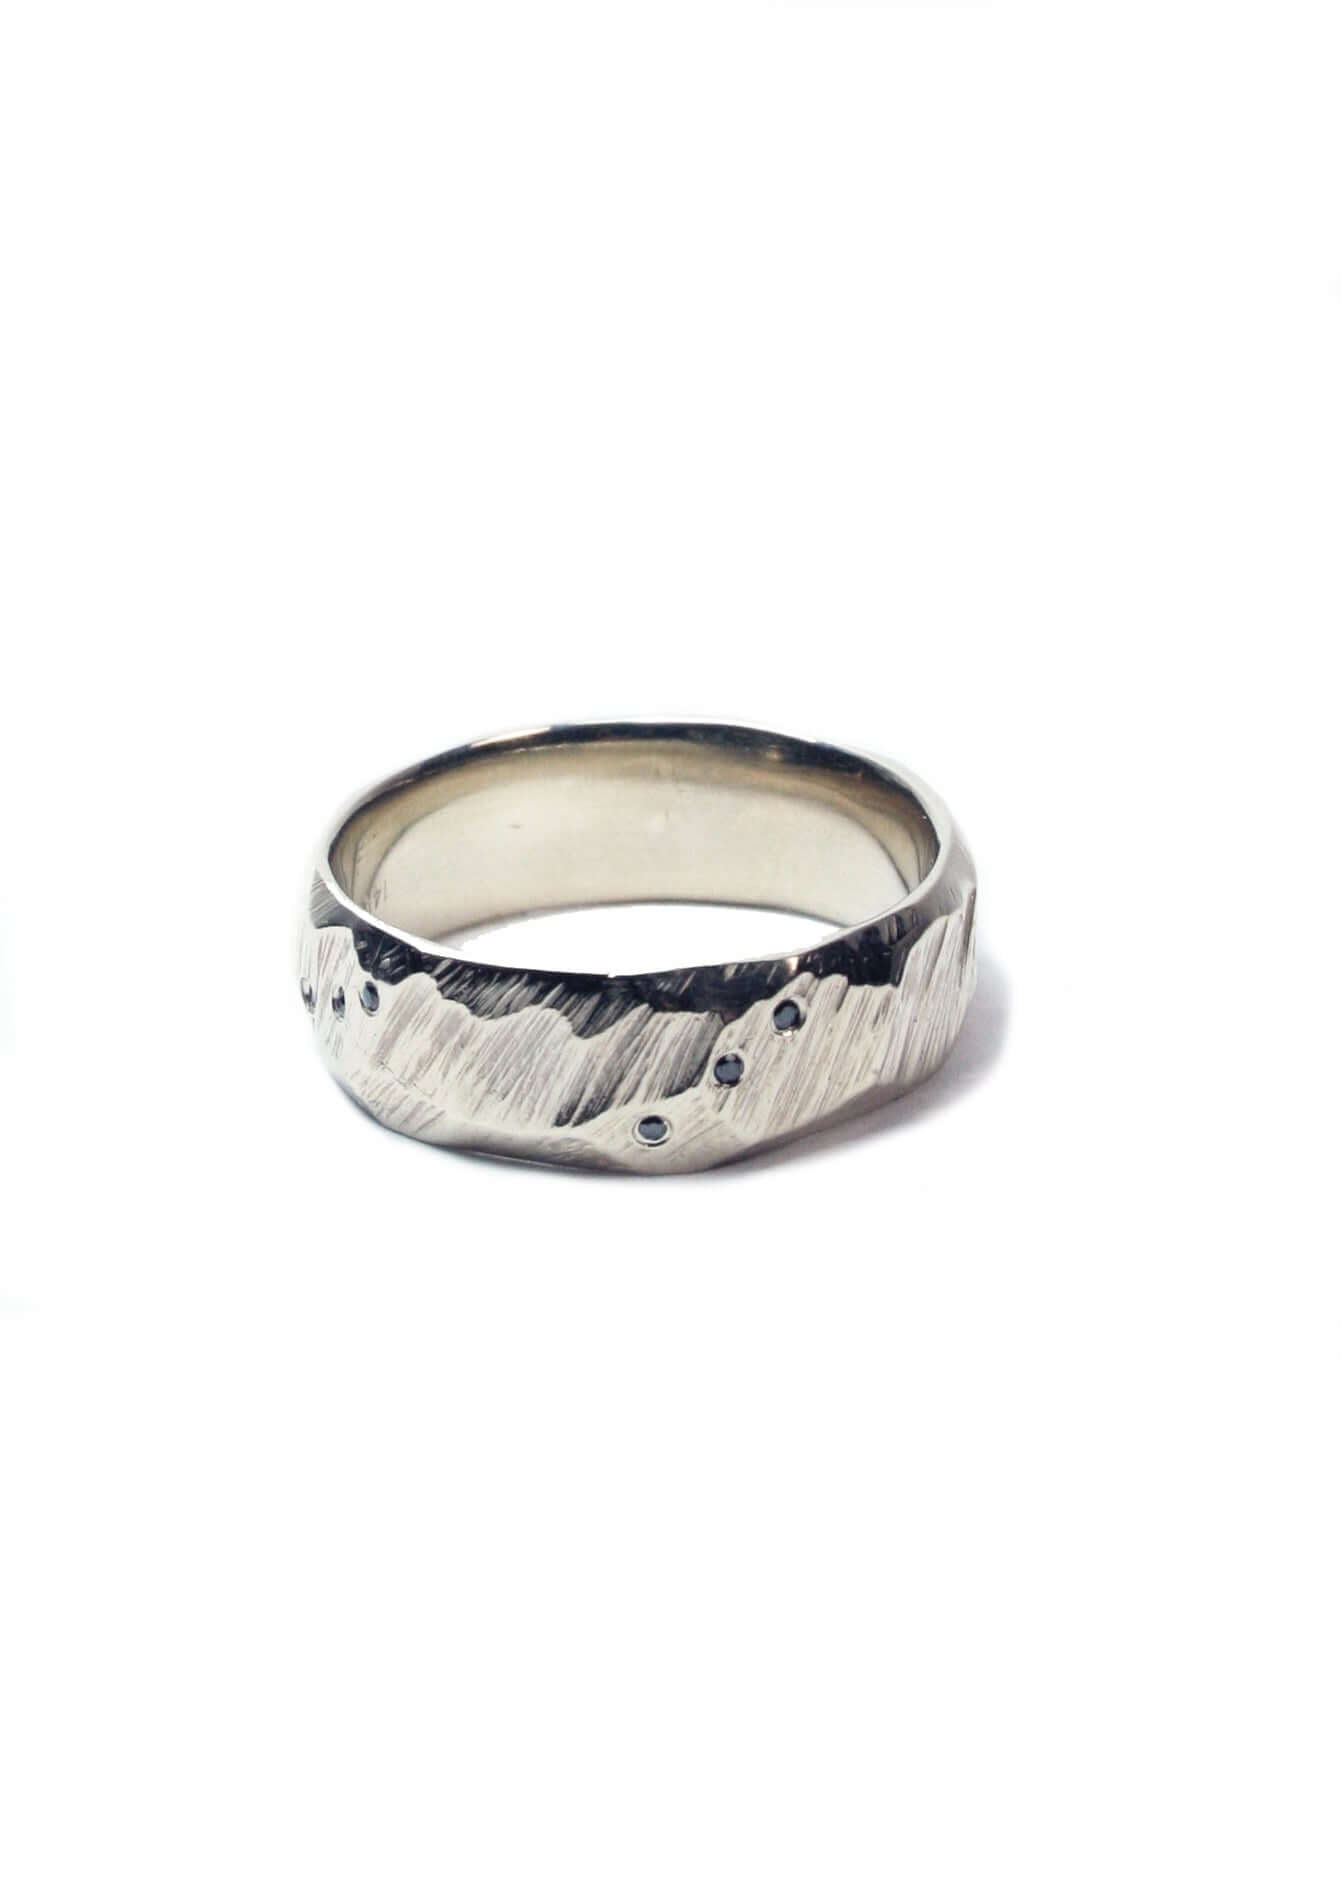 Ragged Wedding Band with black diamonds white gold